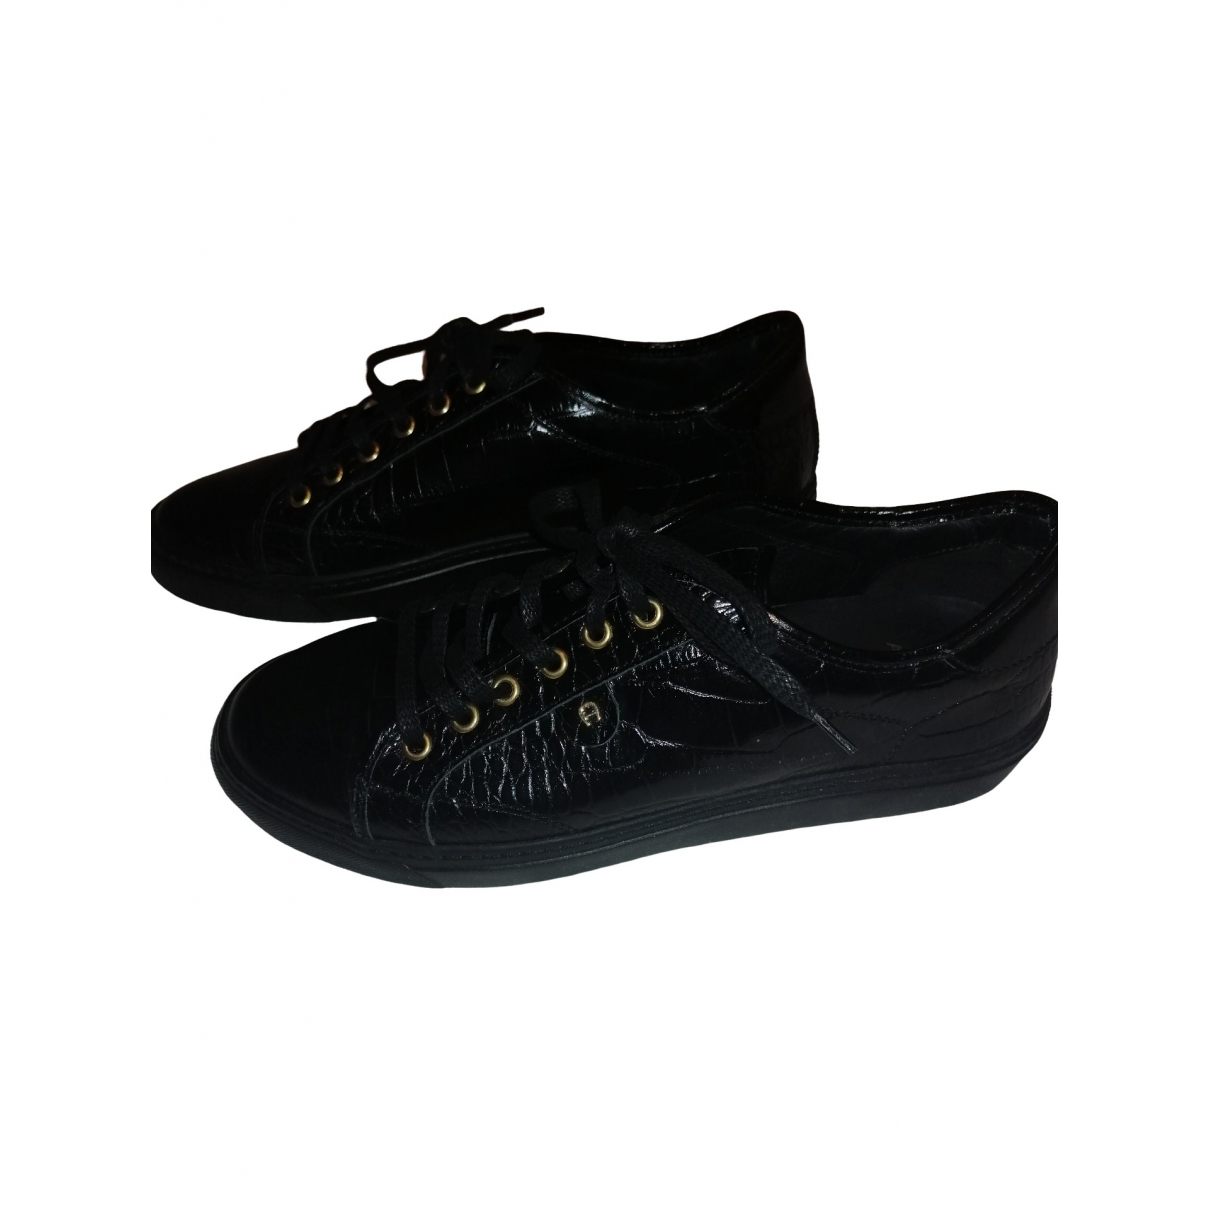 Aigner \N Black Patent leather Trainers for Women 40 EU